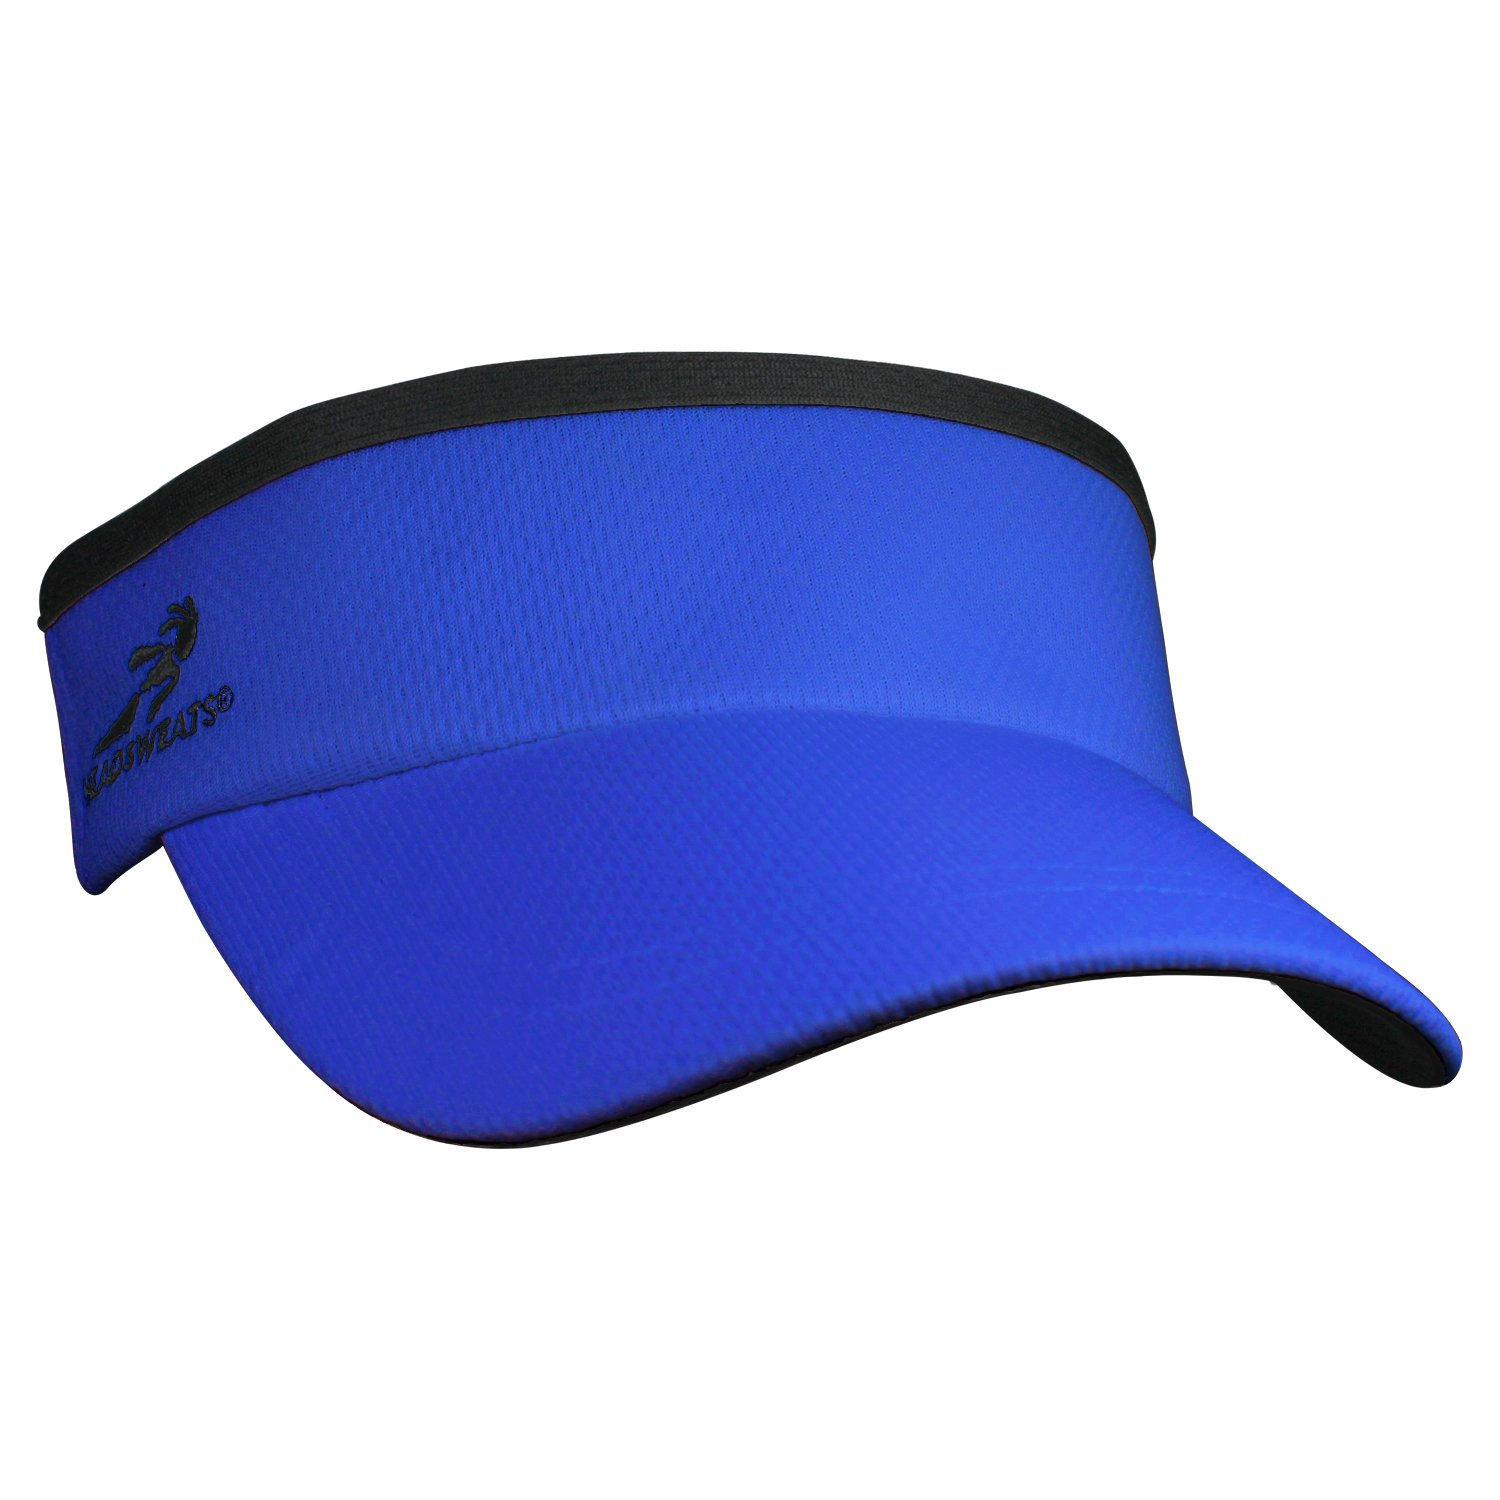 Headsweats Supervisor Sun/Race/Running/Outdoor Sports Visor, Royal, One Size by Headsweats